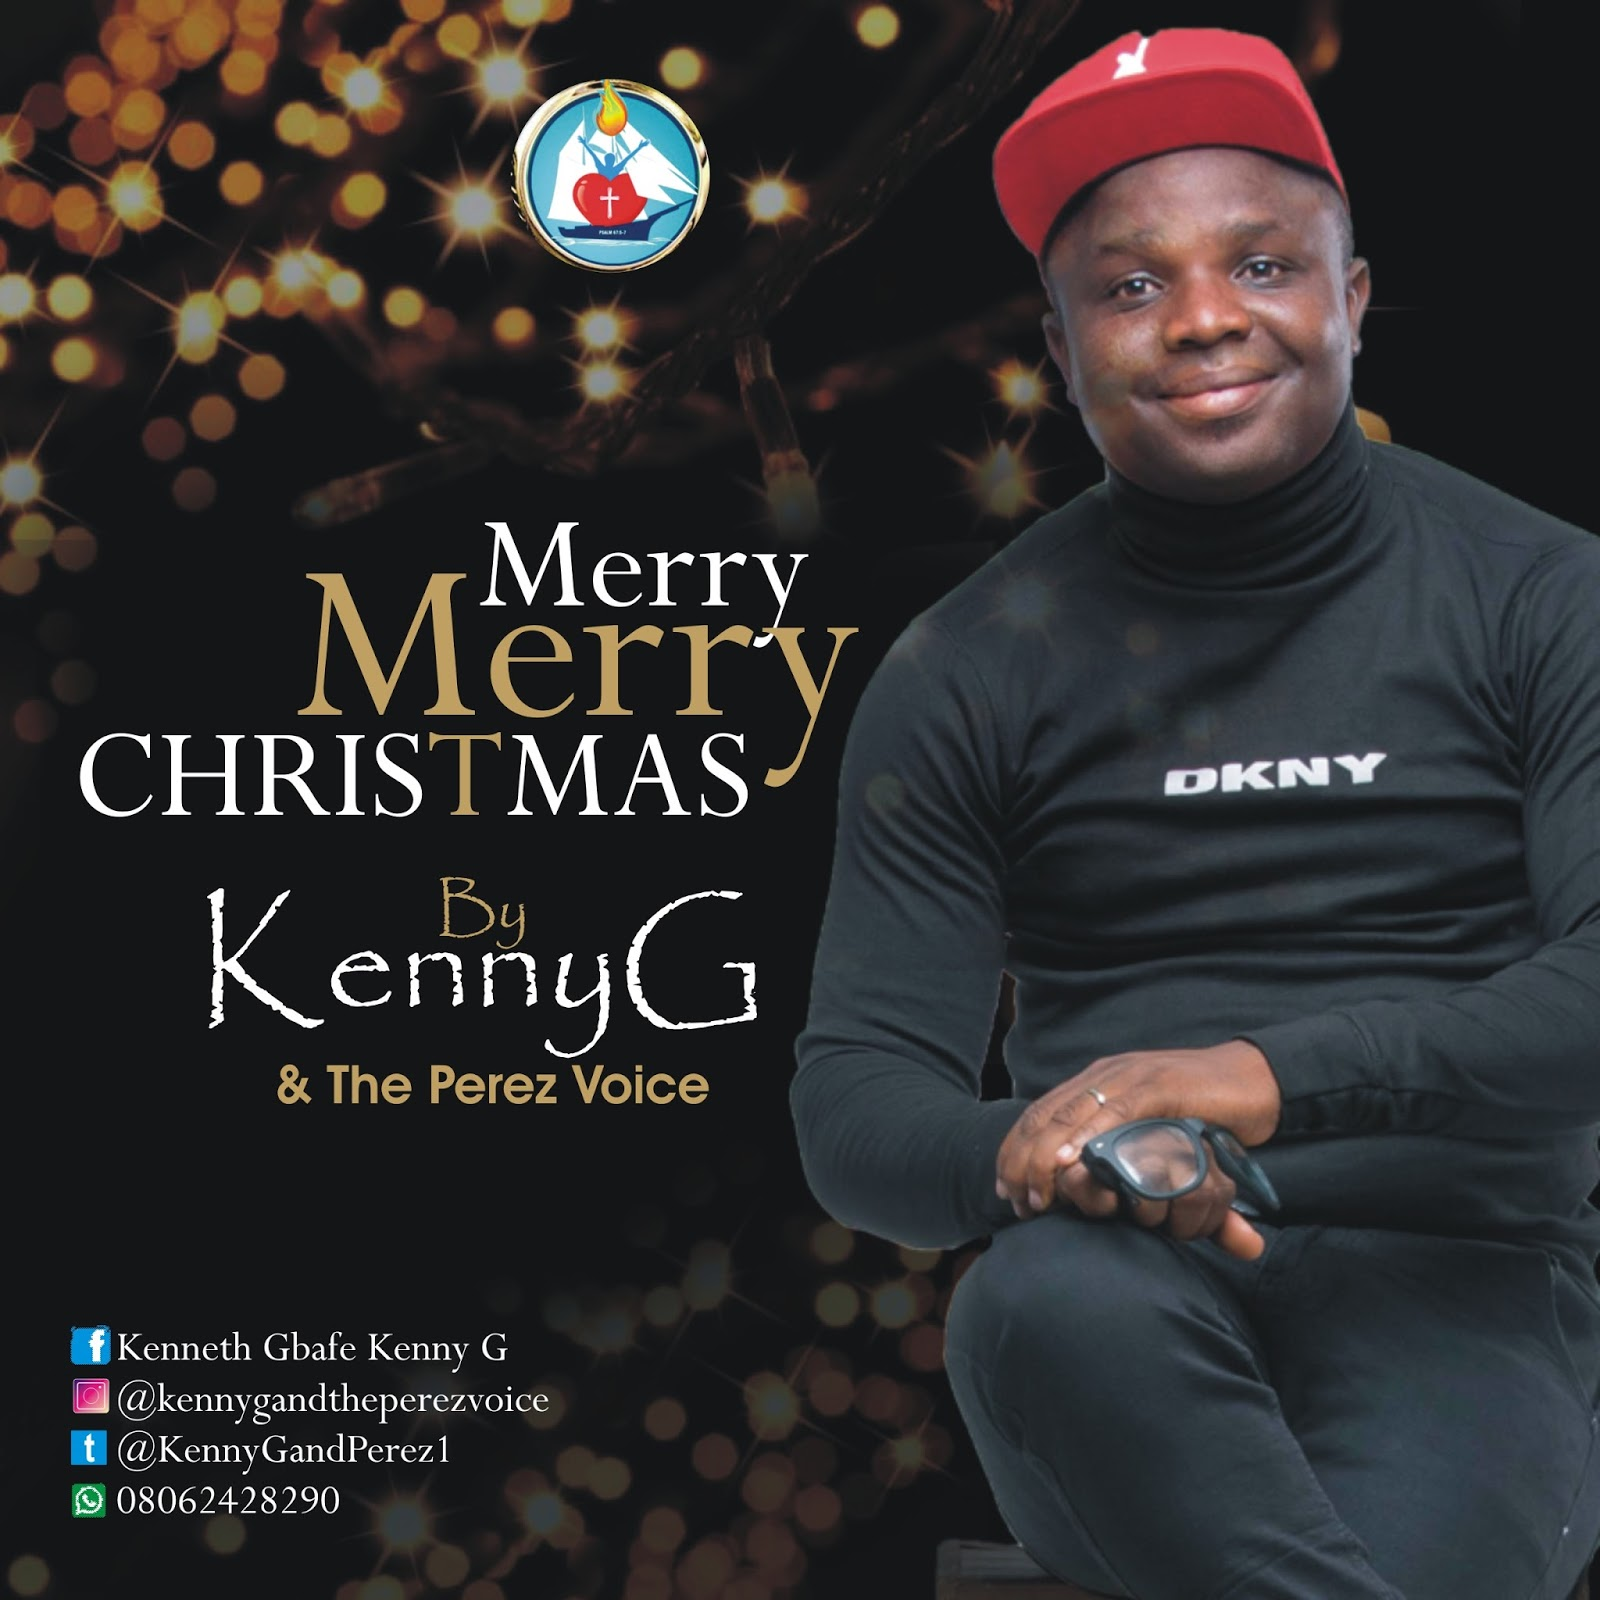 Kenny G & Perez Voice - Merry Christmas purchase and be Bless ...